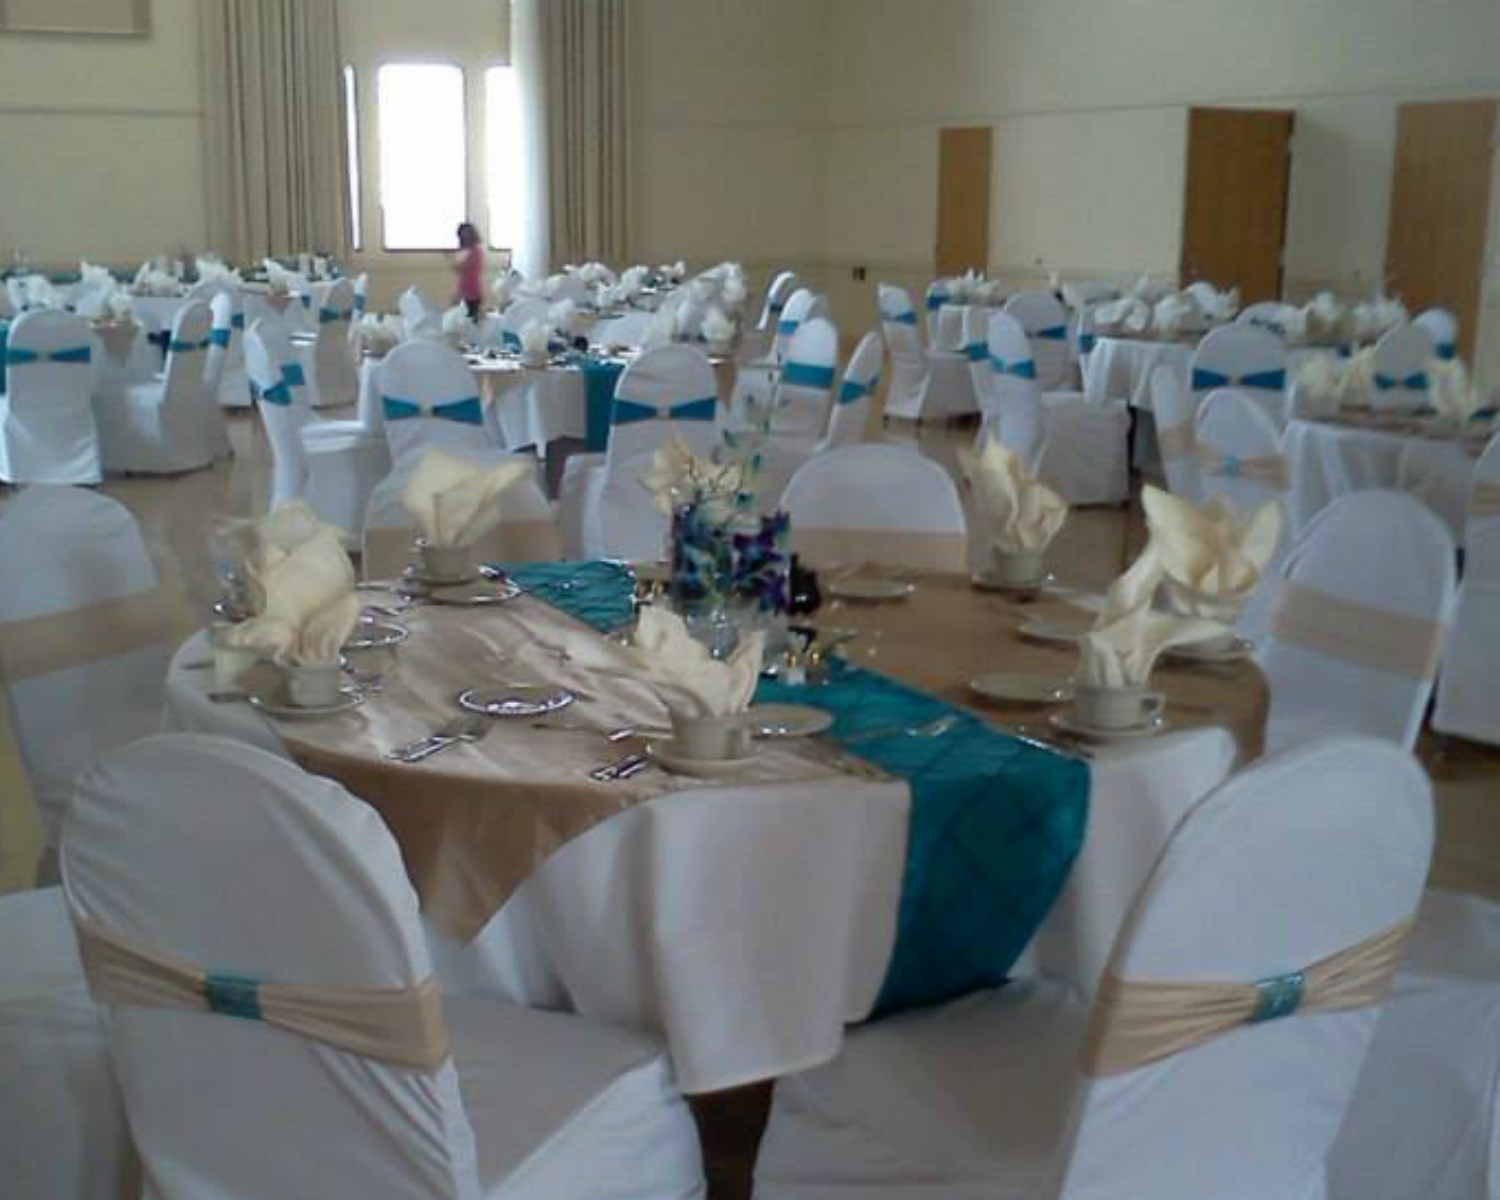 wedding chair covers, Wedding table runners, bands